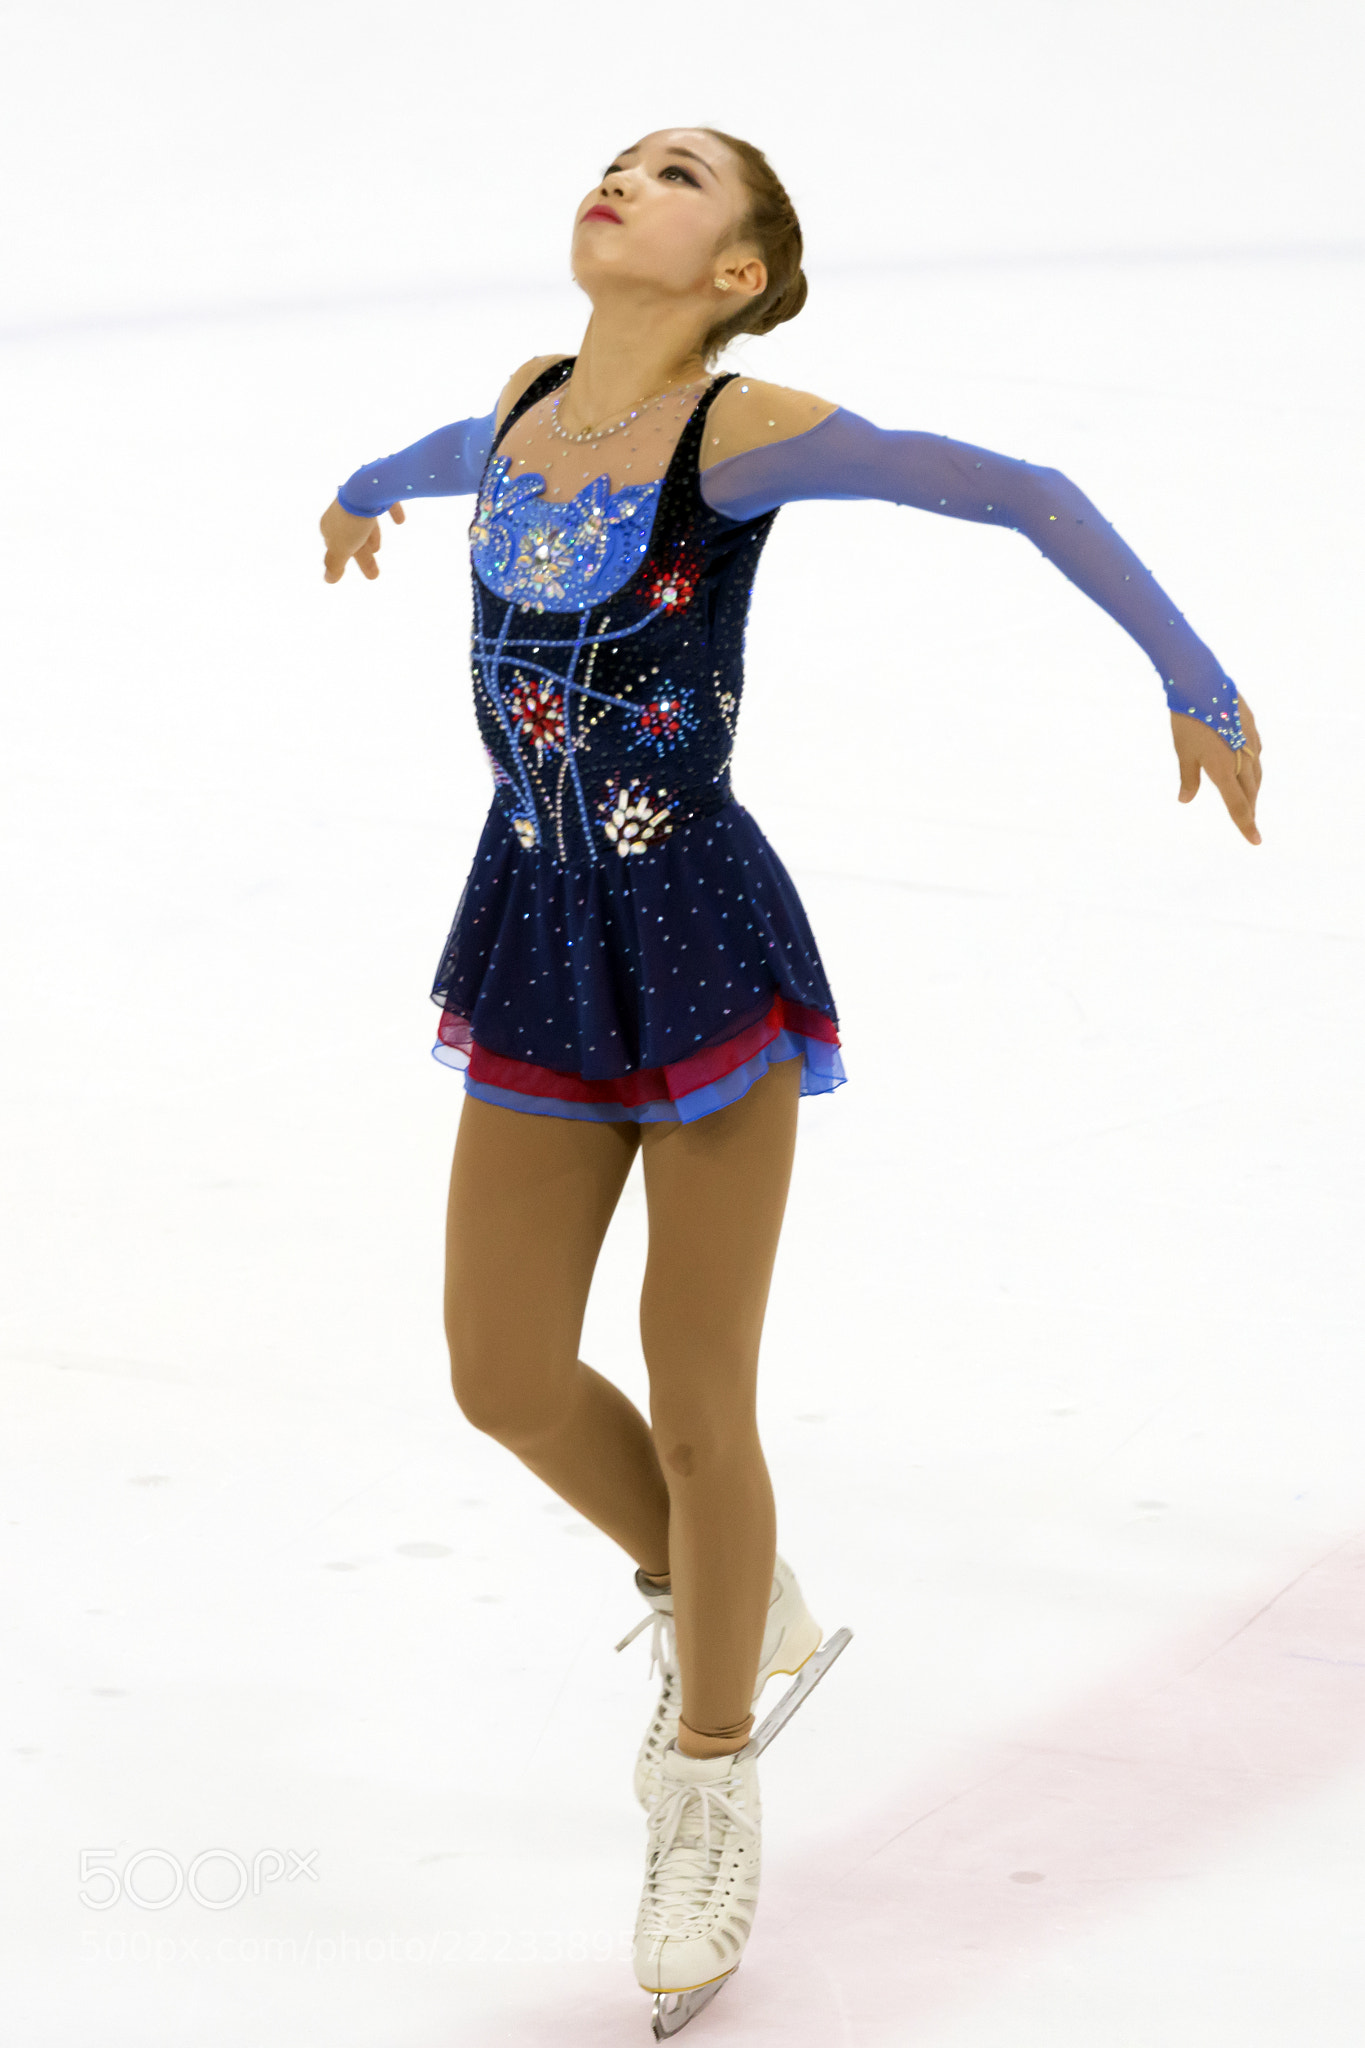 Kim Yelim, A Korean Female Figure Skater